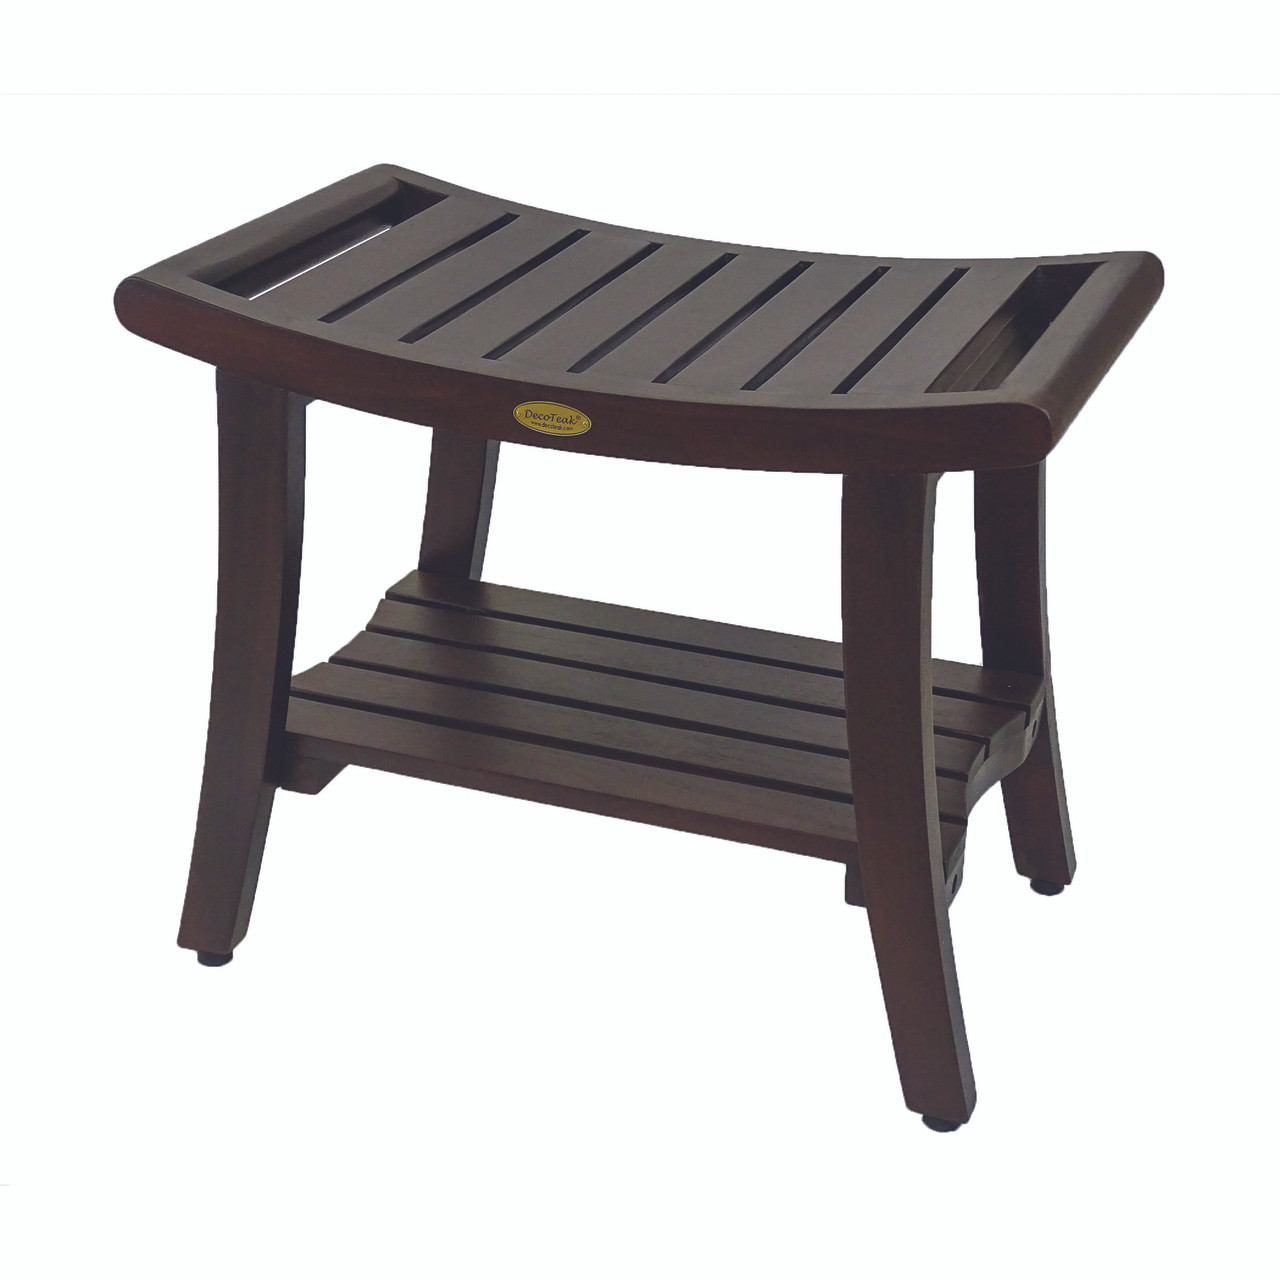 Decoteak Harmony 24 Inch Teak Shower Bench With Shelf And Liftaide Arms